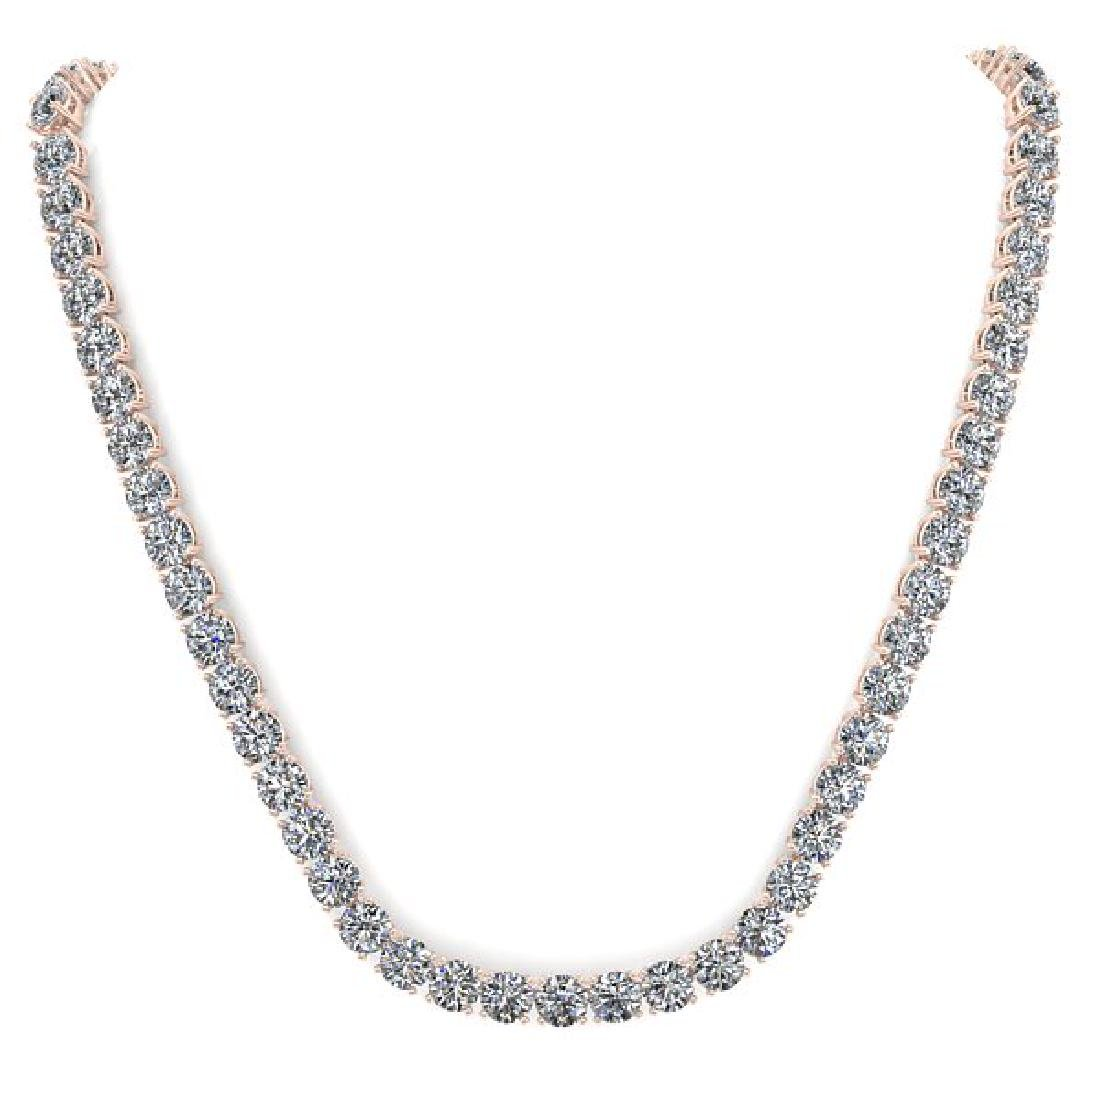 34 CTW Certified SI Diamond Necklace 14K Rose Gold - 3